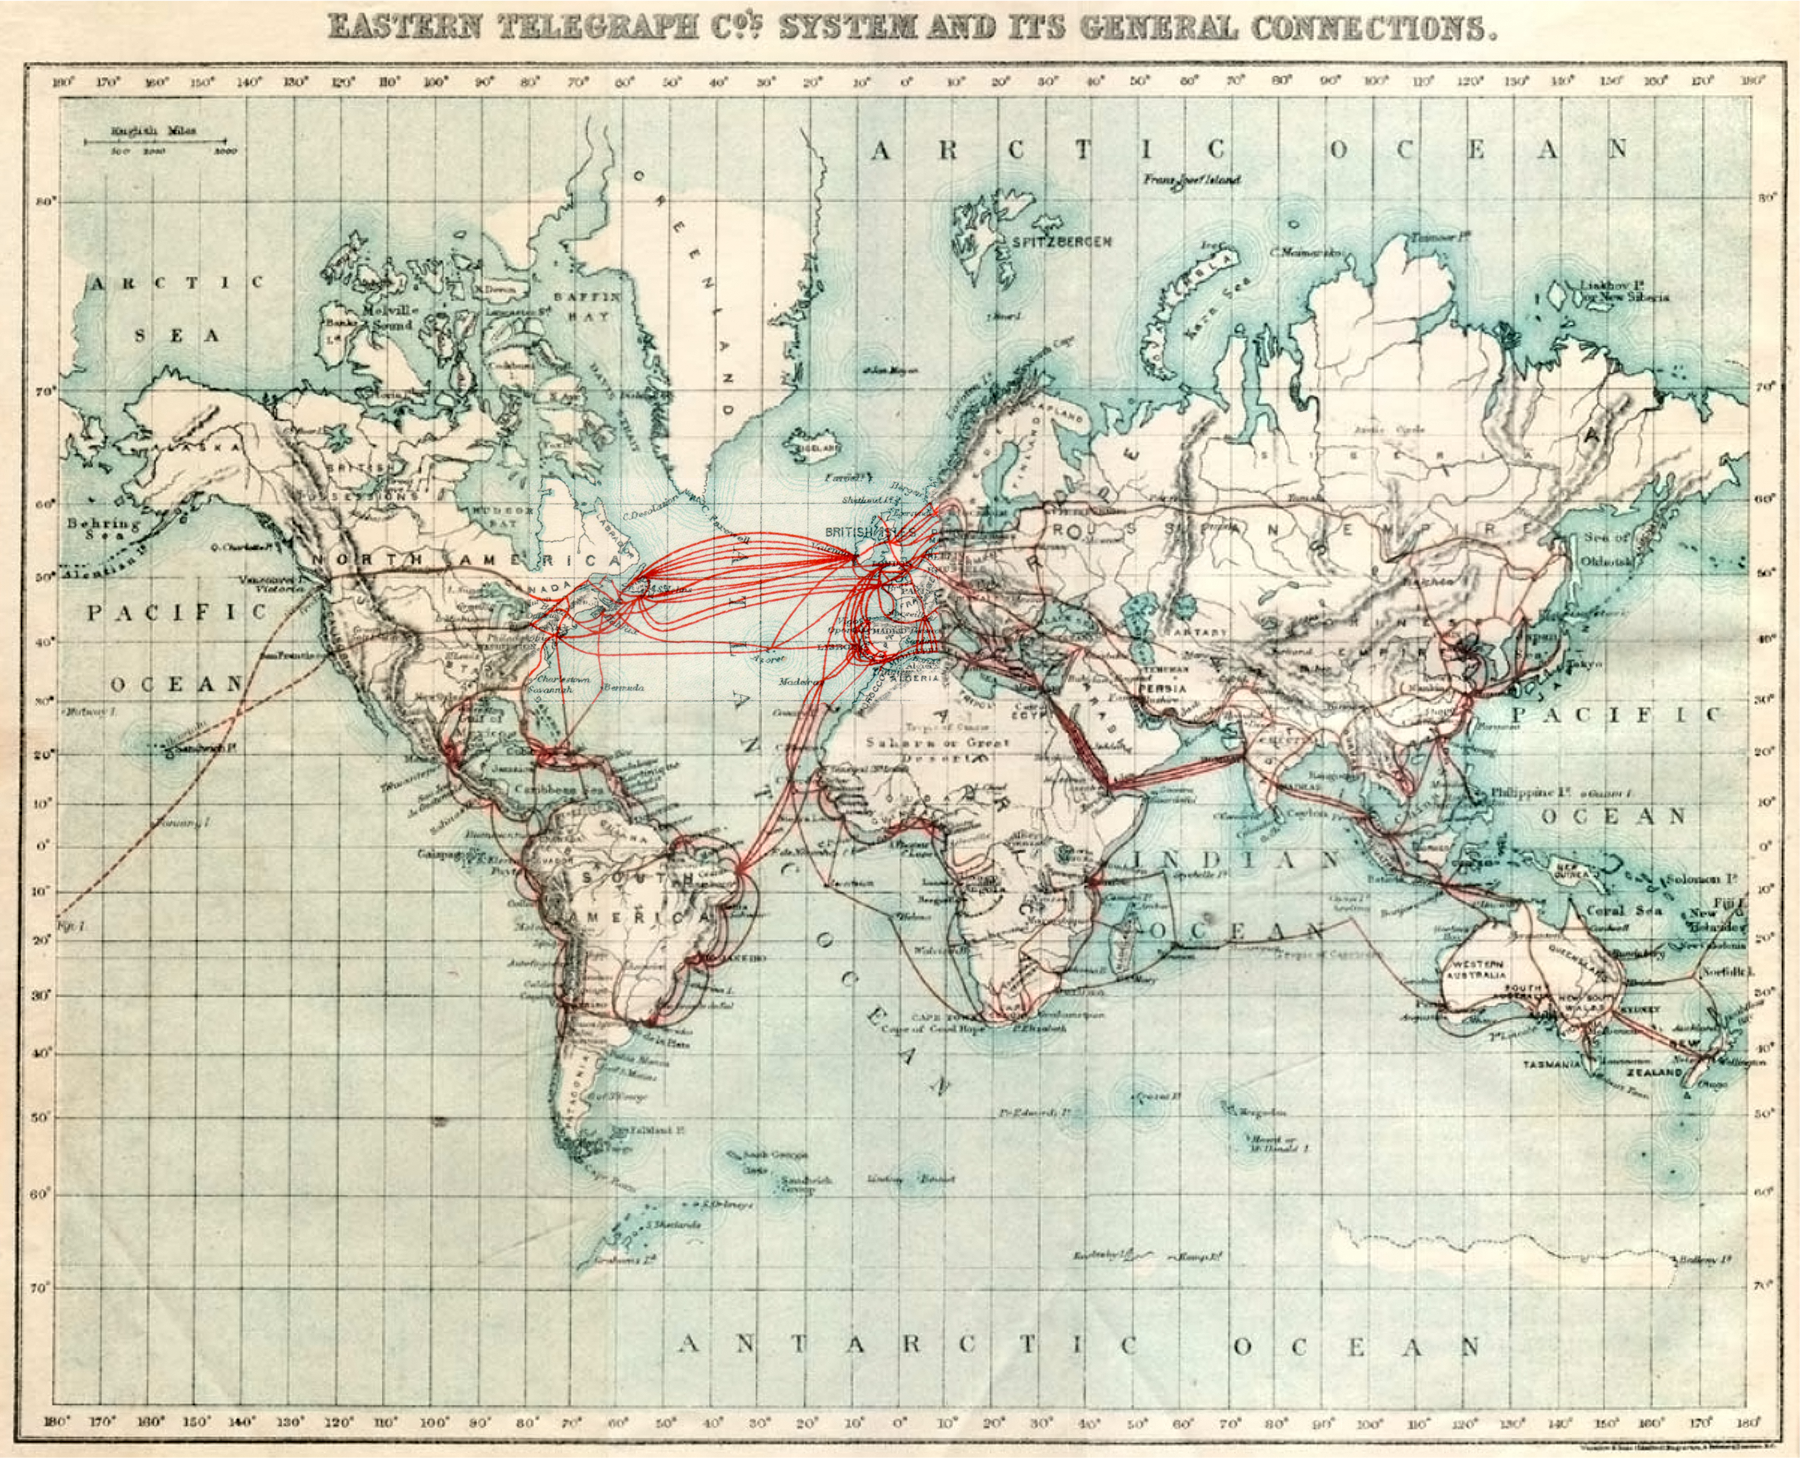 1901 Eastern Telegraph cables